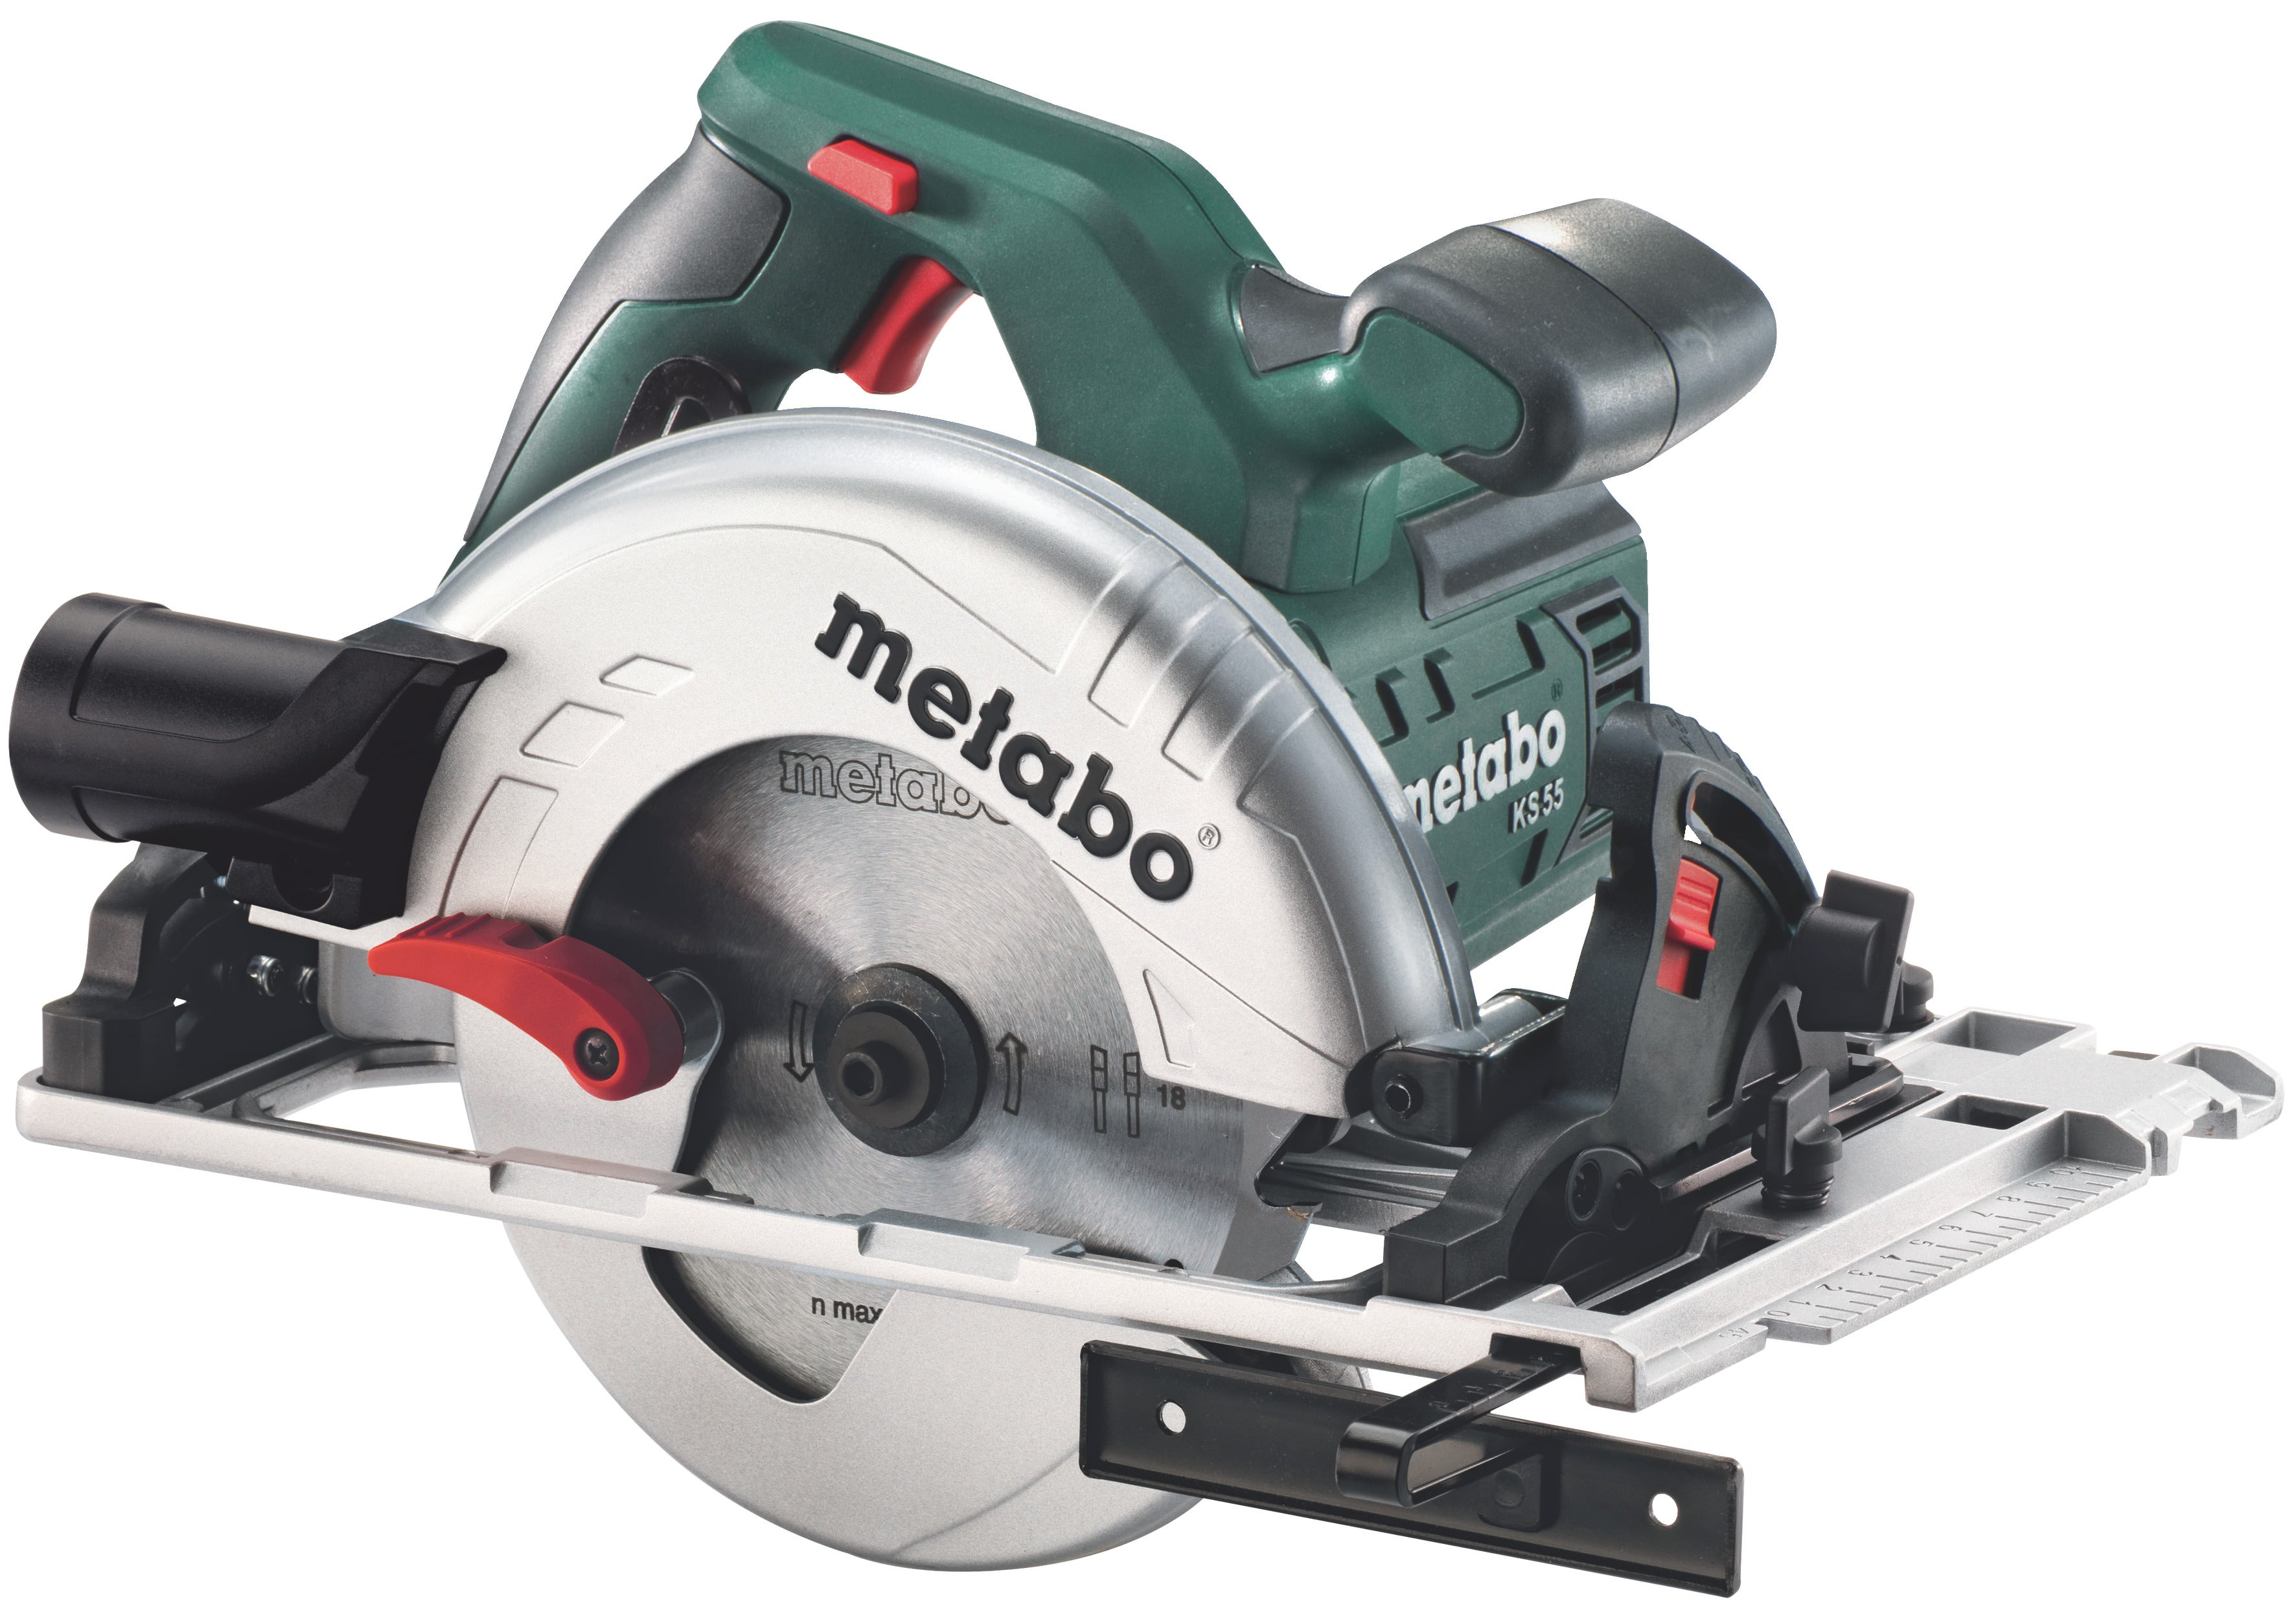 Scie Circulaire Filaire Metabo 670 W 160 Mm Ks 55 Fs